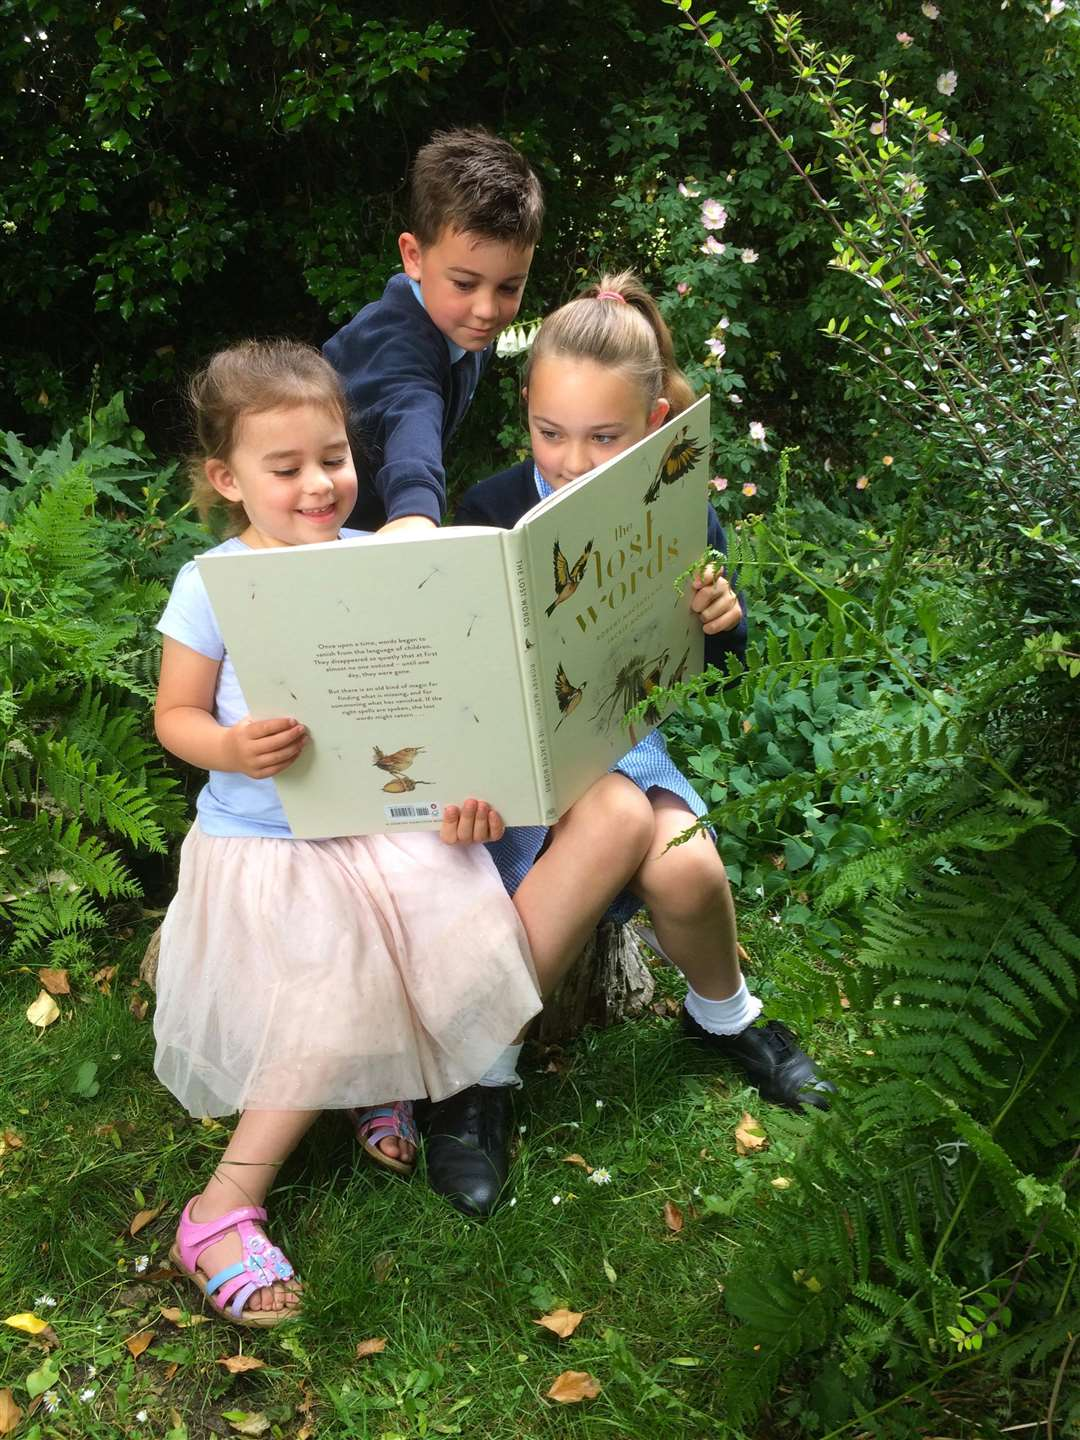 Ebony, Lochlan & Nylah Docherty, pupils at Ropsley Primary School, Lincolnshire read The Lost Words by Robert Macfarlane and Jackie Morris. (2607641)